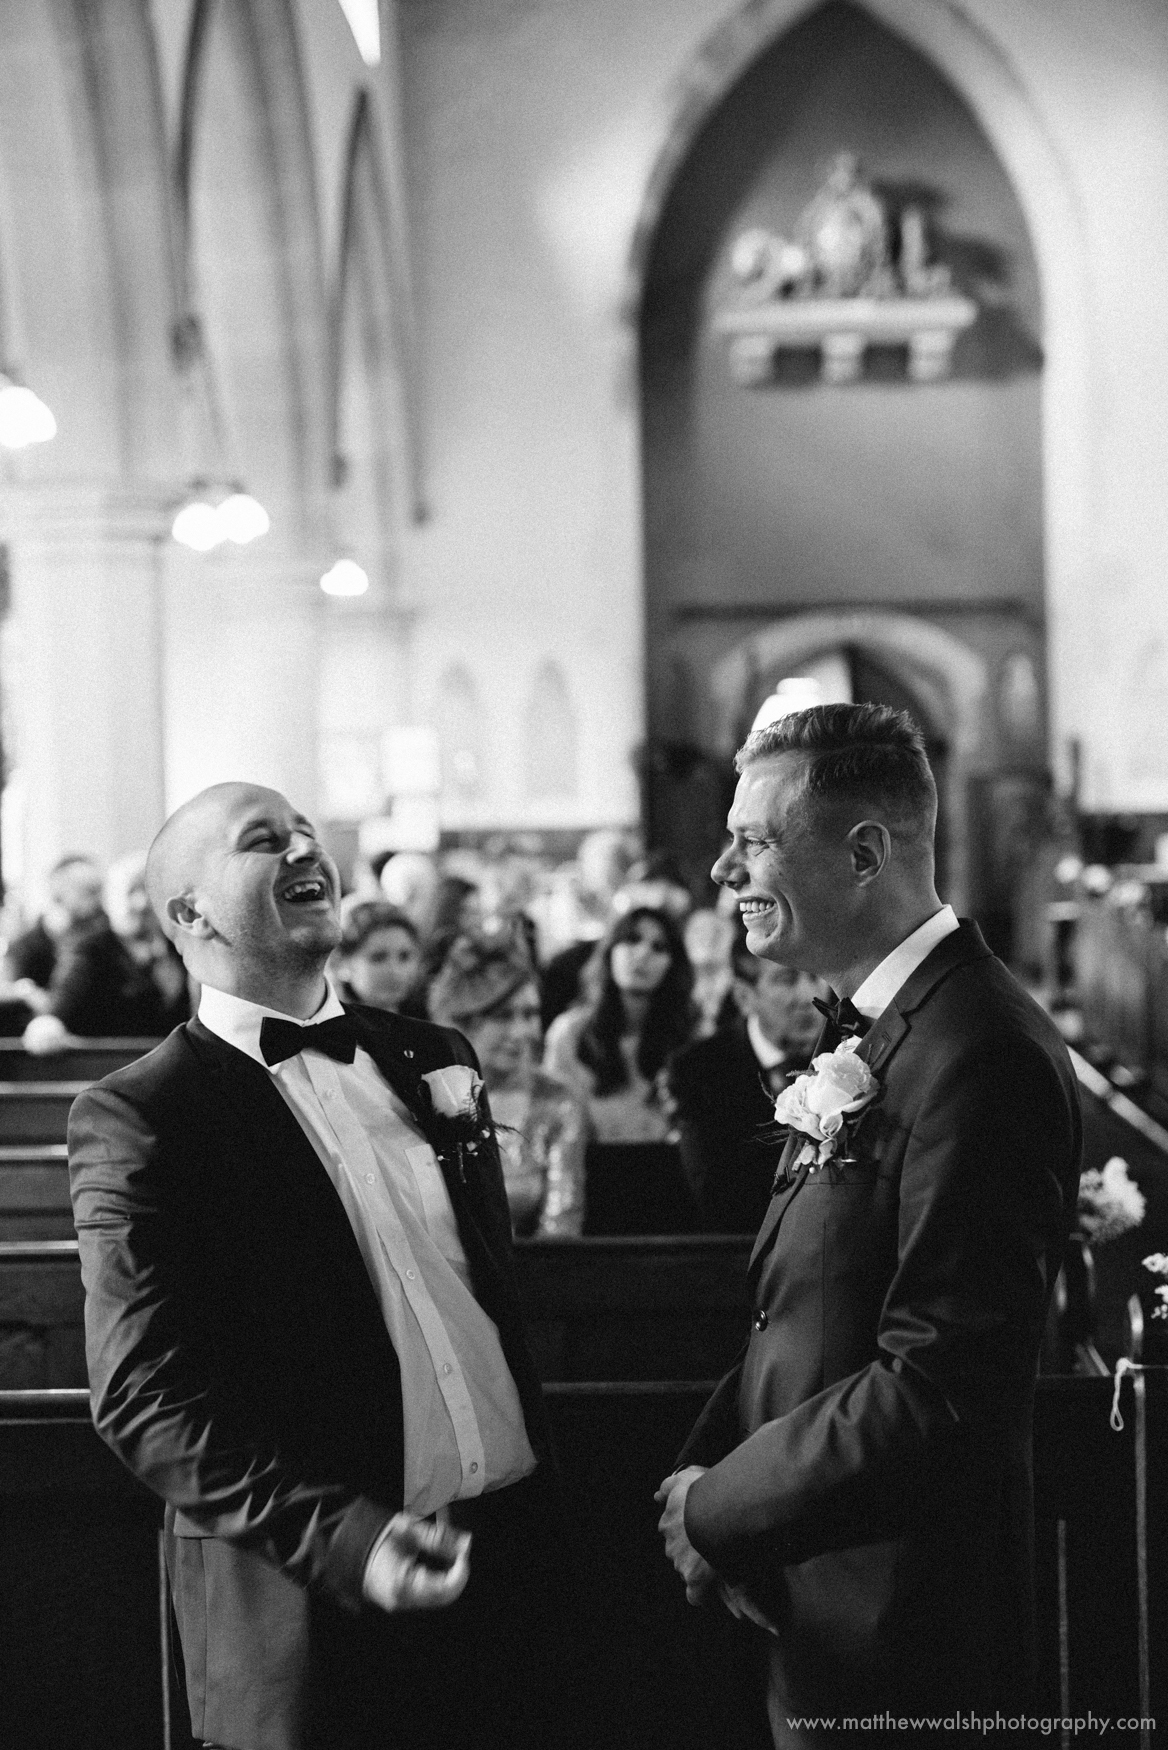 The groom and his best man await the bride at the church, also looking relaxed but with perhaps a few hidden nerves